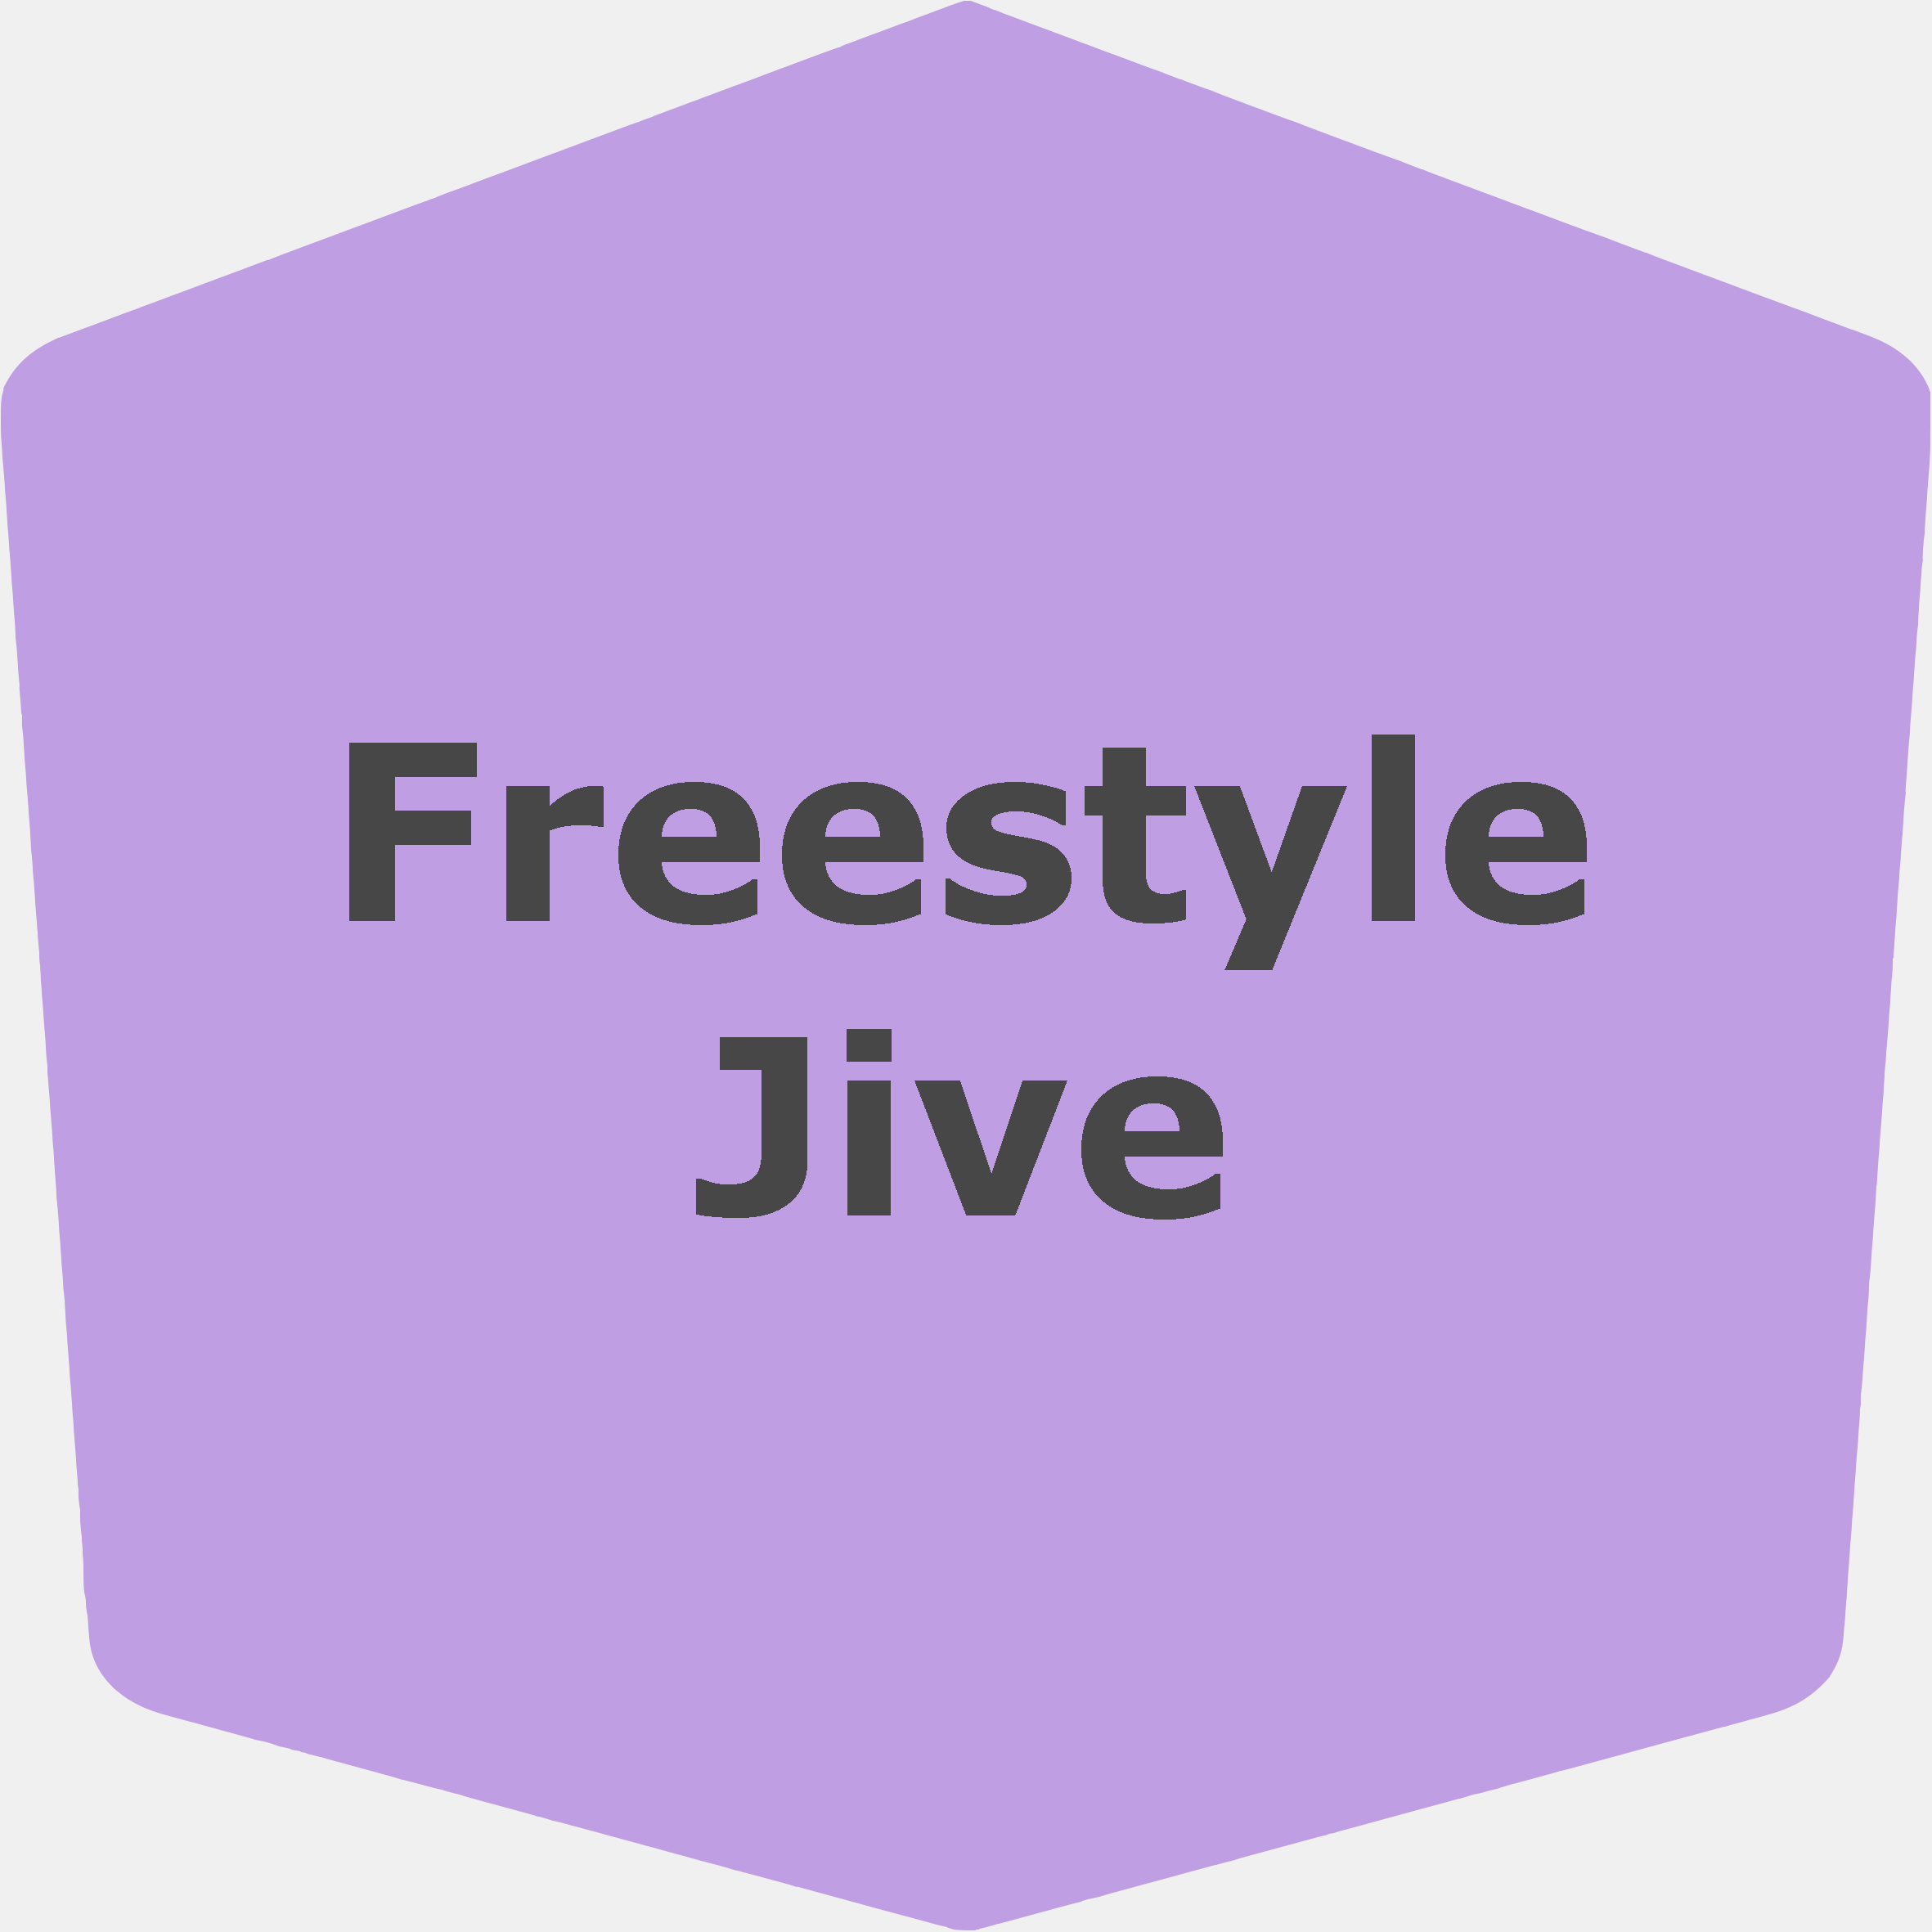 #Freestyle Jive (Icon).jpg